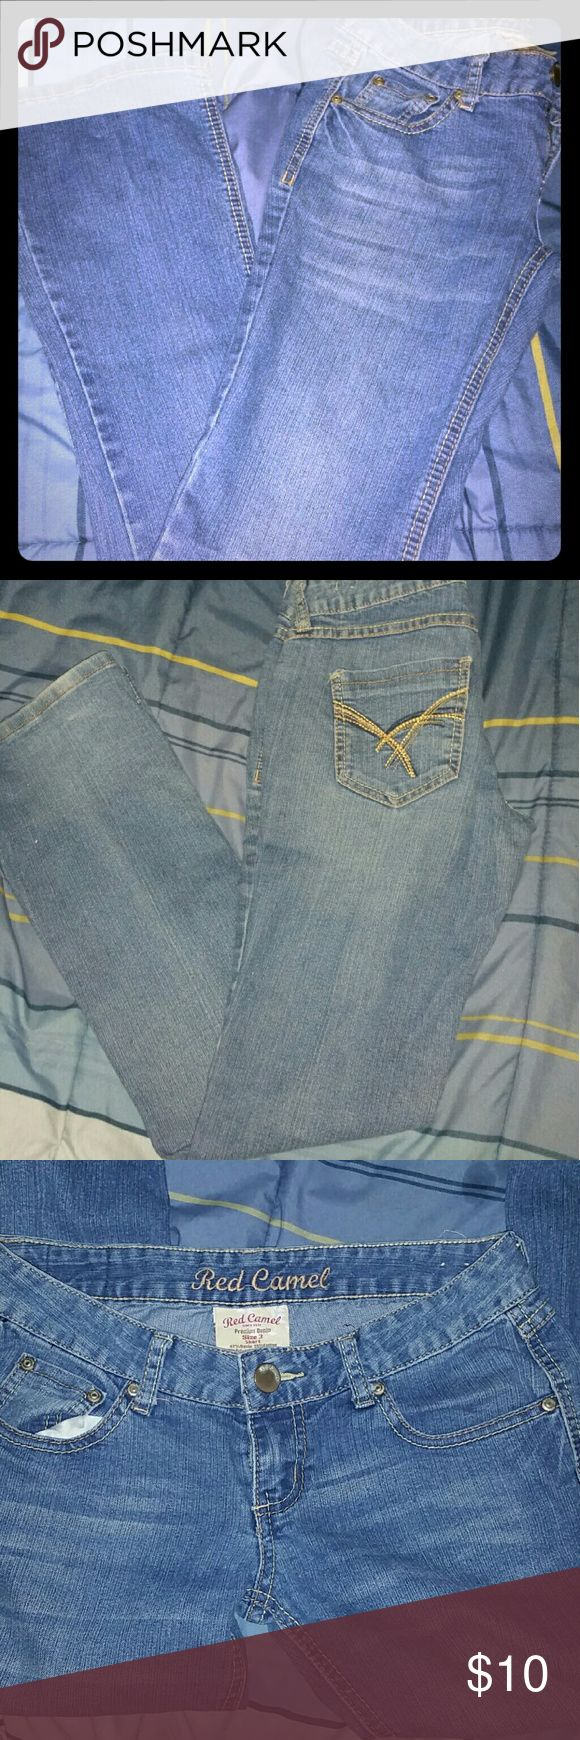 Red camel jeans Size 3 short blue jean premium denim stretch 26w/31l. MUST BE BUNDLED WITH ATLEAST THREE ITEMS ON ALL $5 ITEMS Red Camel Jeans Boot Cut